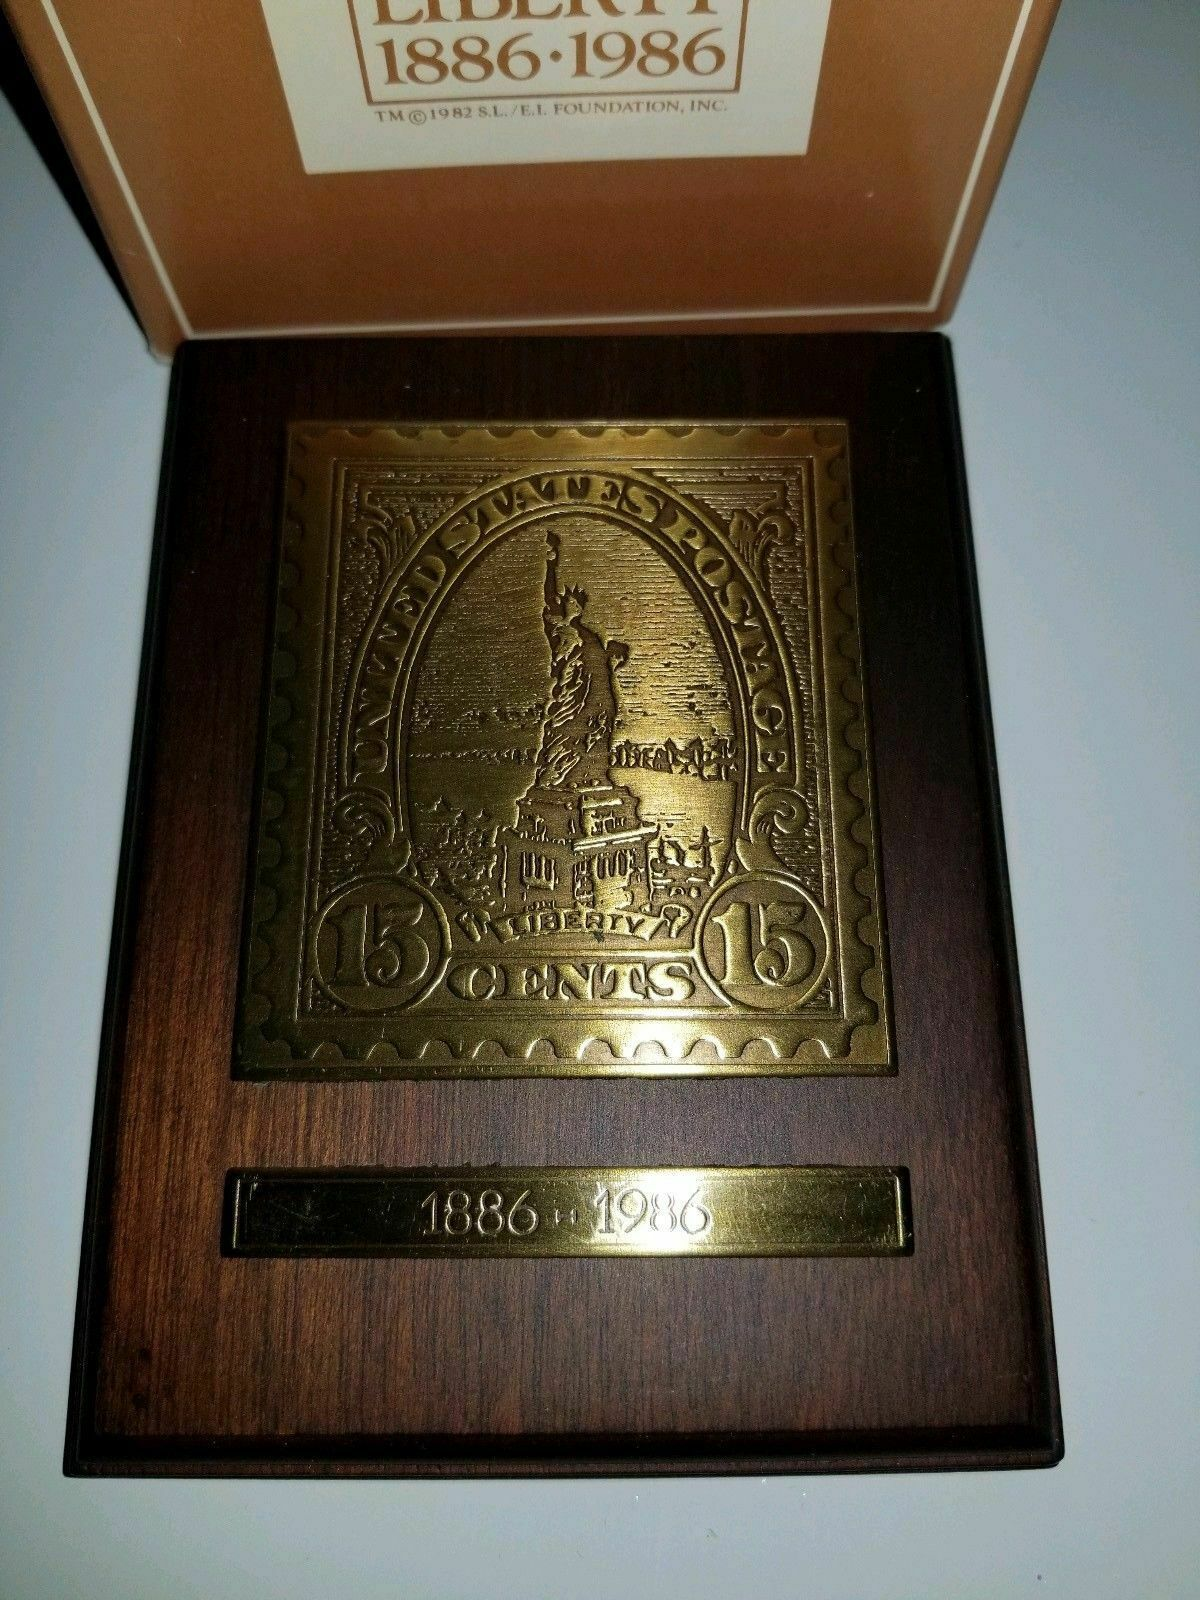 VINTAGE 1985 AVON BRASS STATUE OF LIBERTY STAMP PLAQUE ORIGINAL BOX